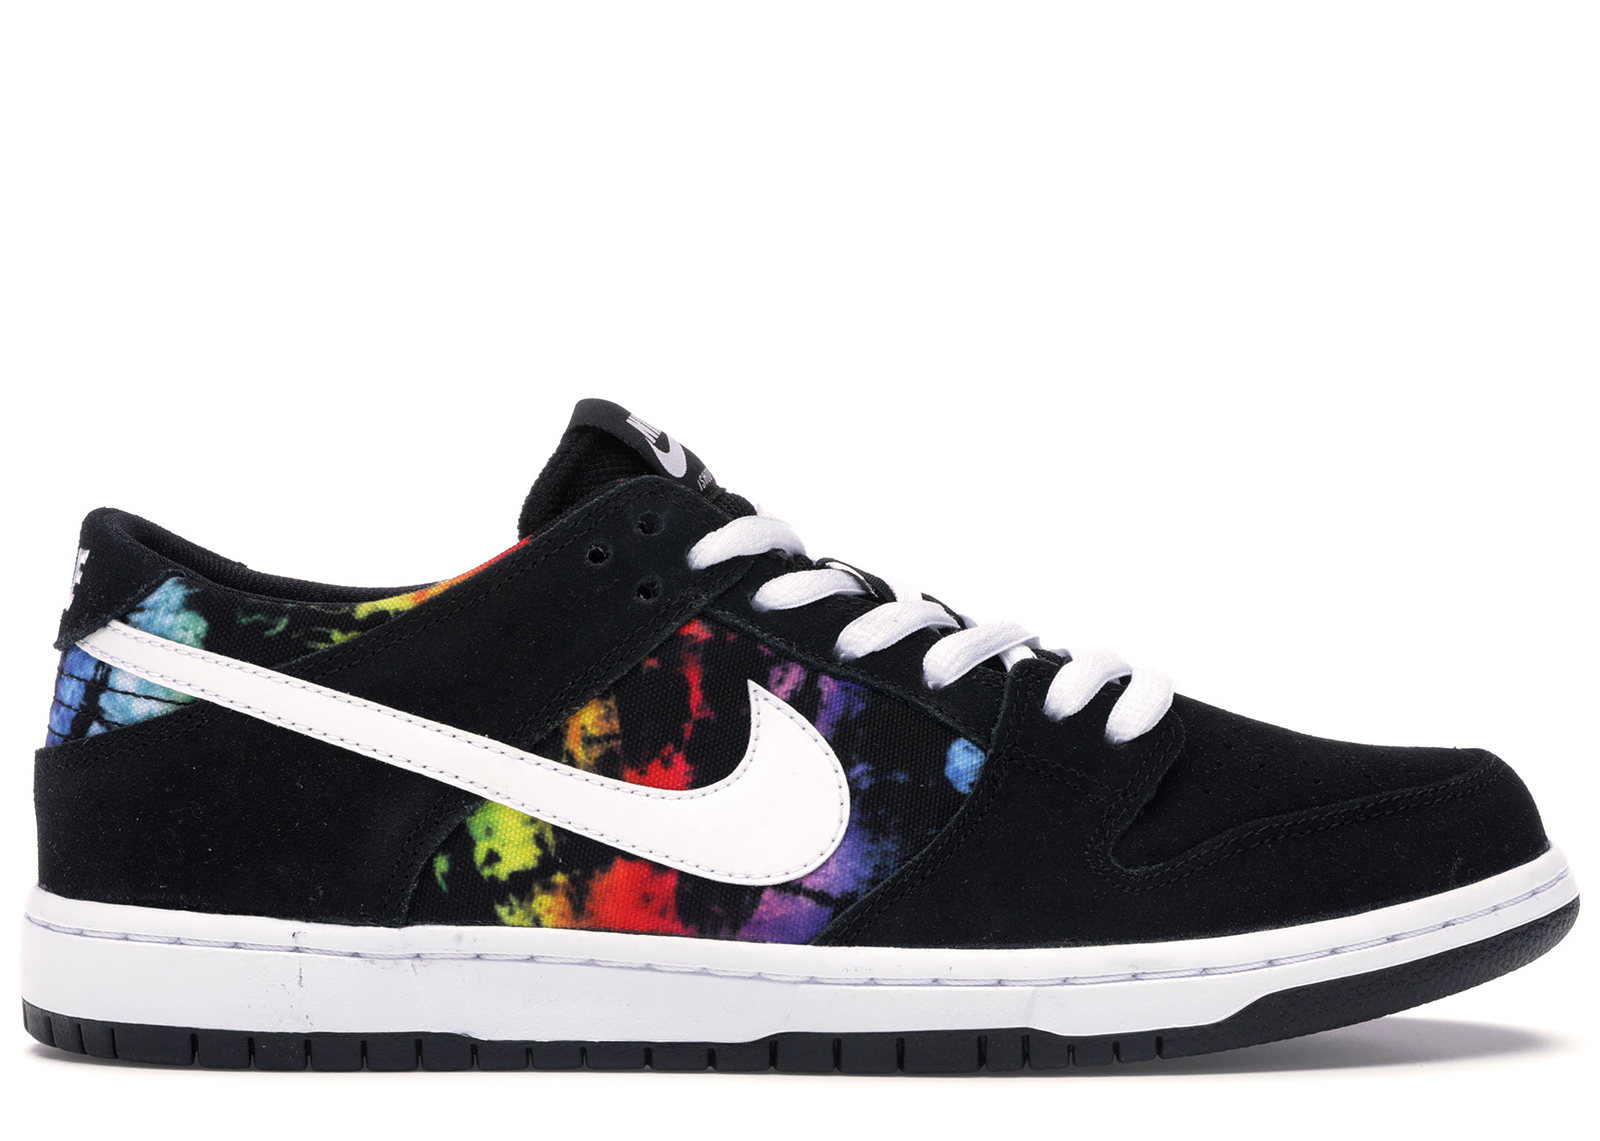 1975e40d Nike Sb Dunk Low Ishod Wair Tie Dye In Black/White-Multi-Color ...